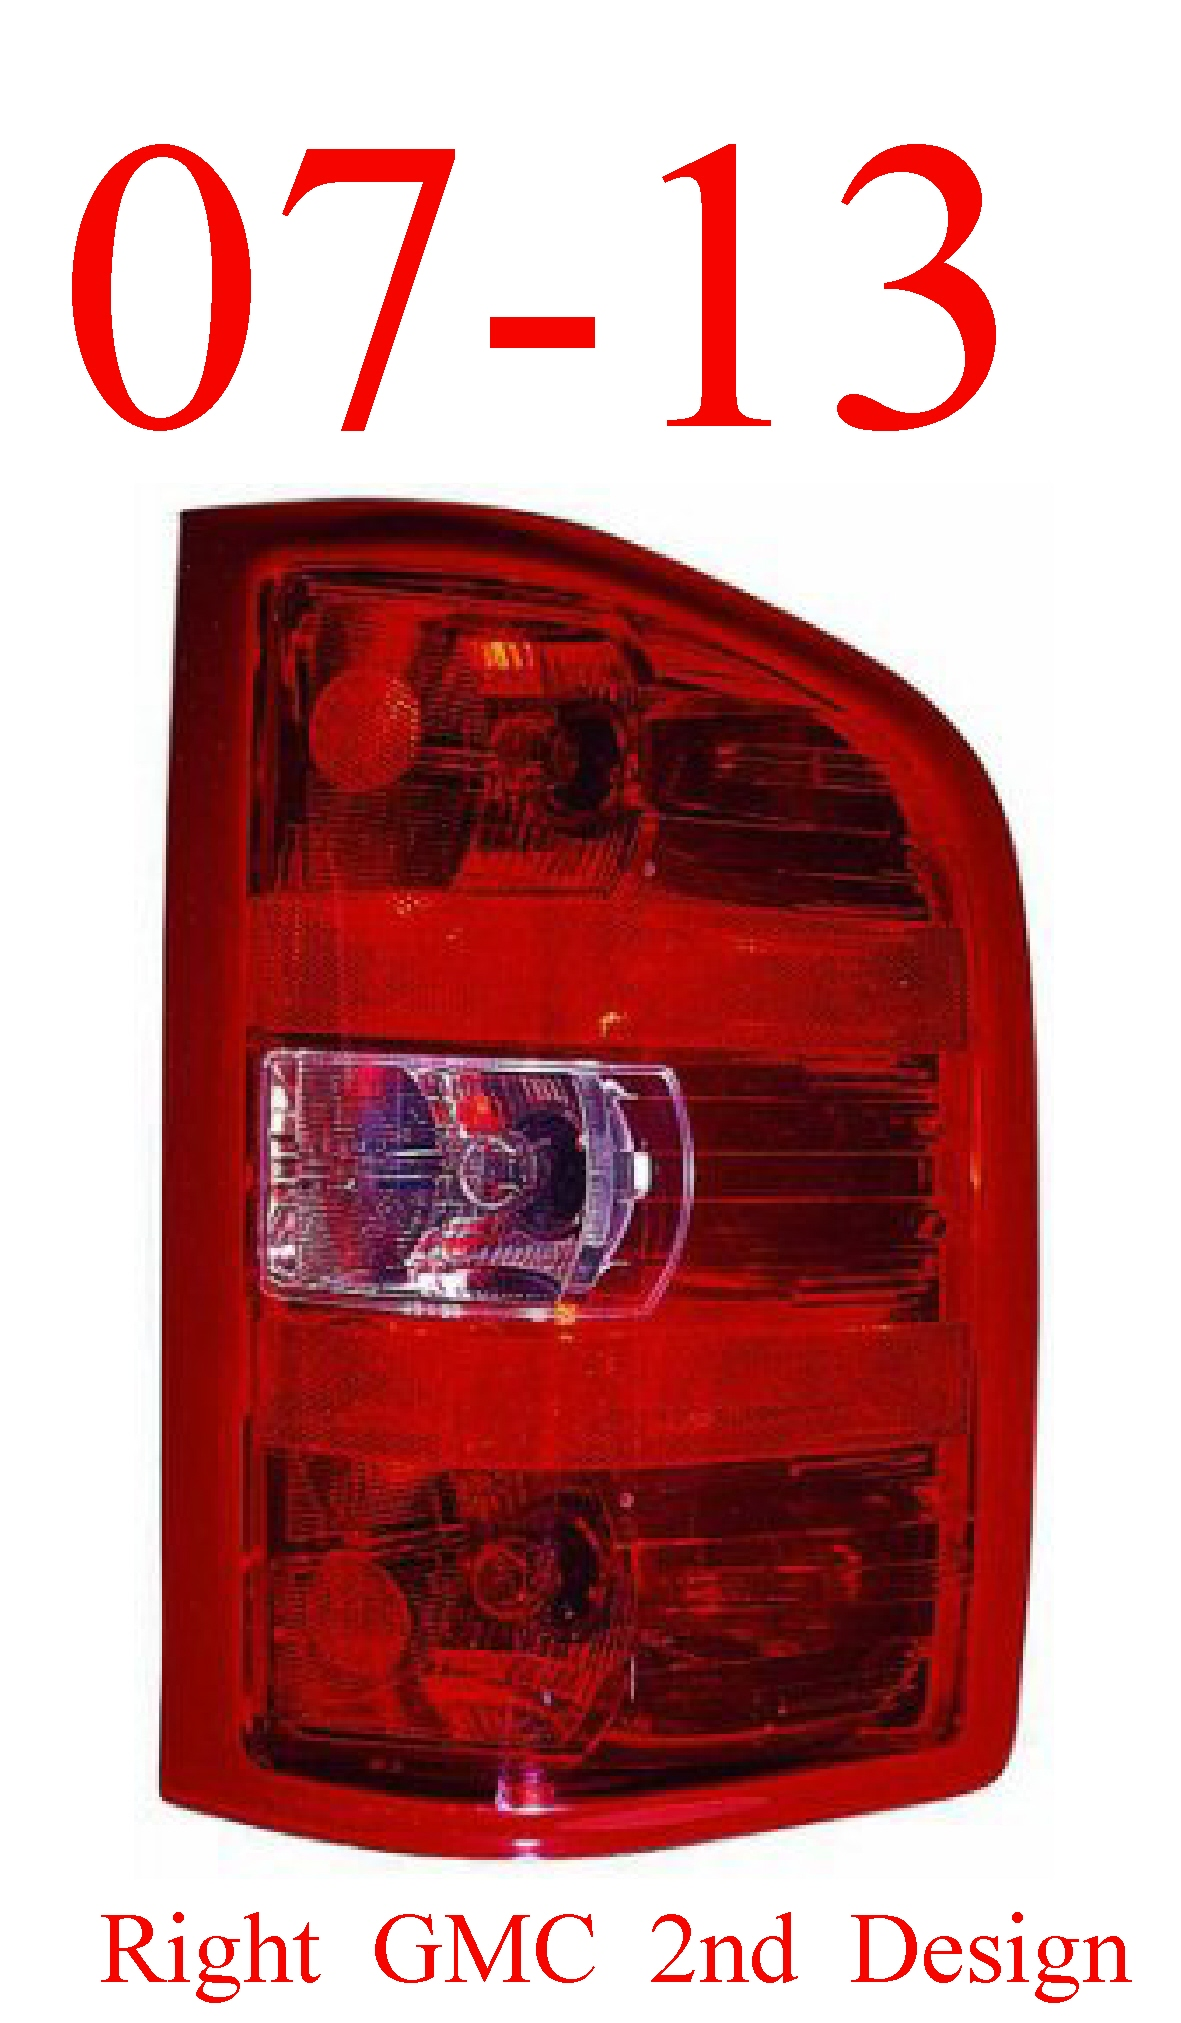 07-13 GMC Right Tail Light 2nd Design